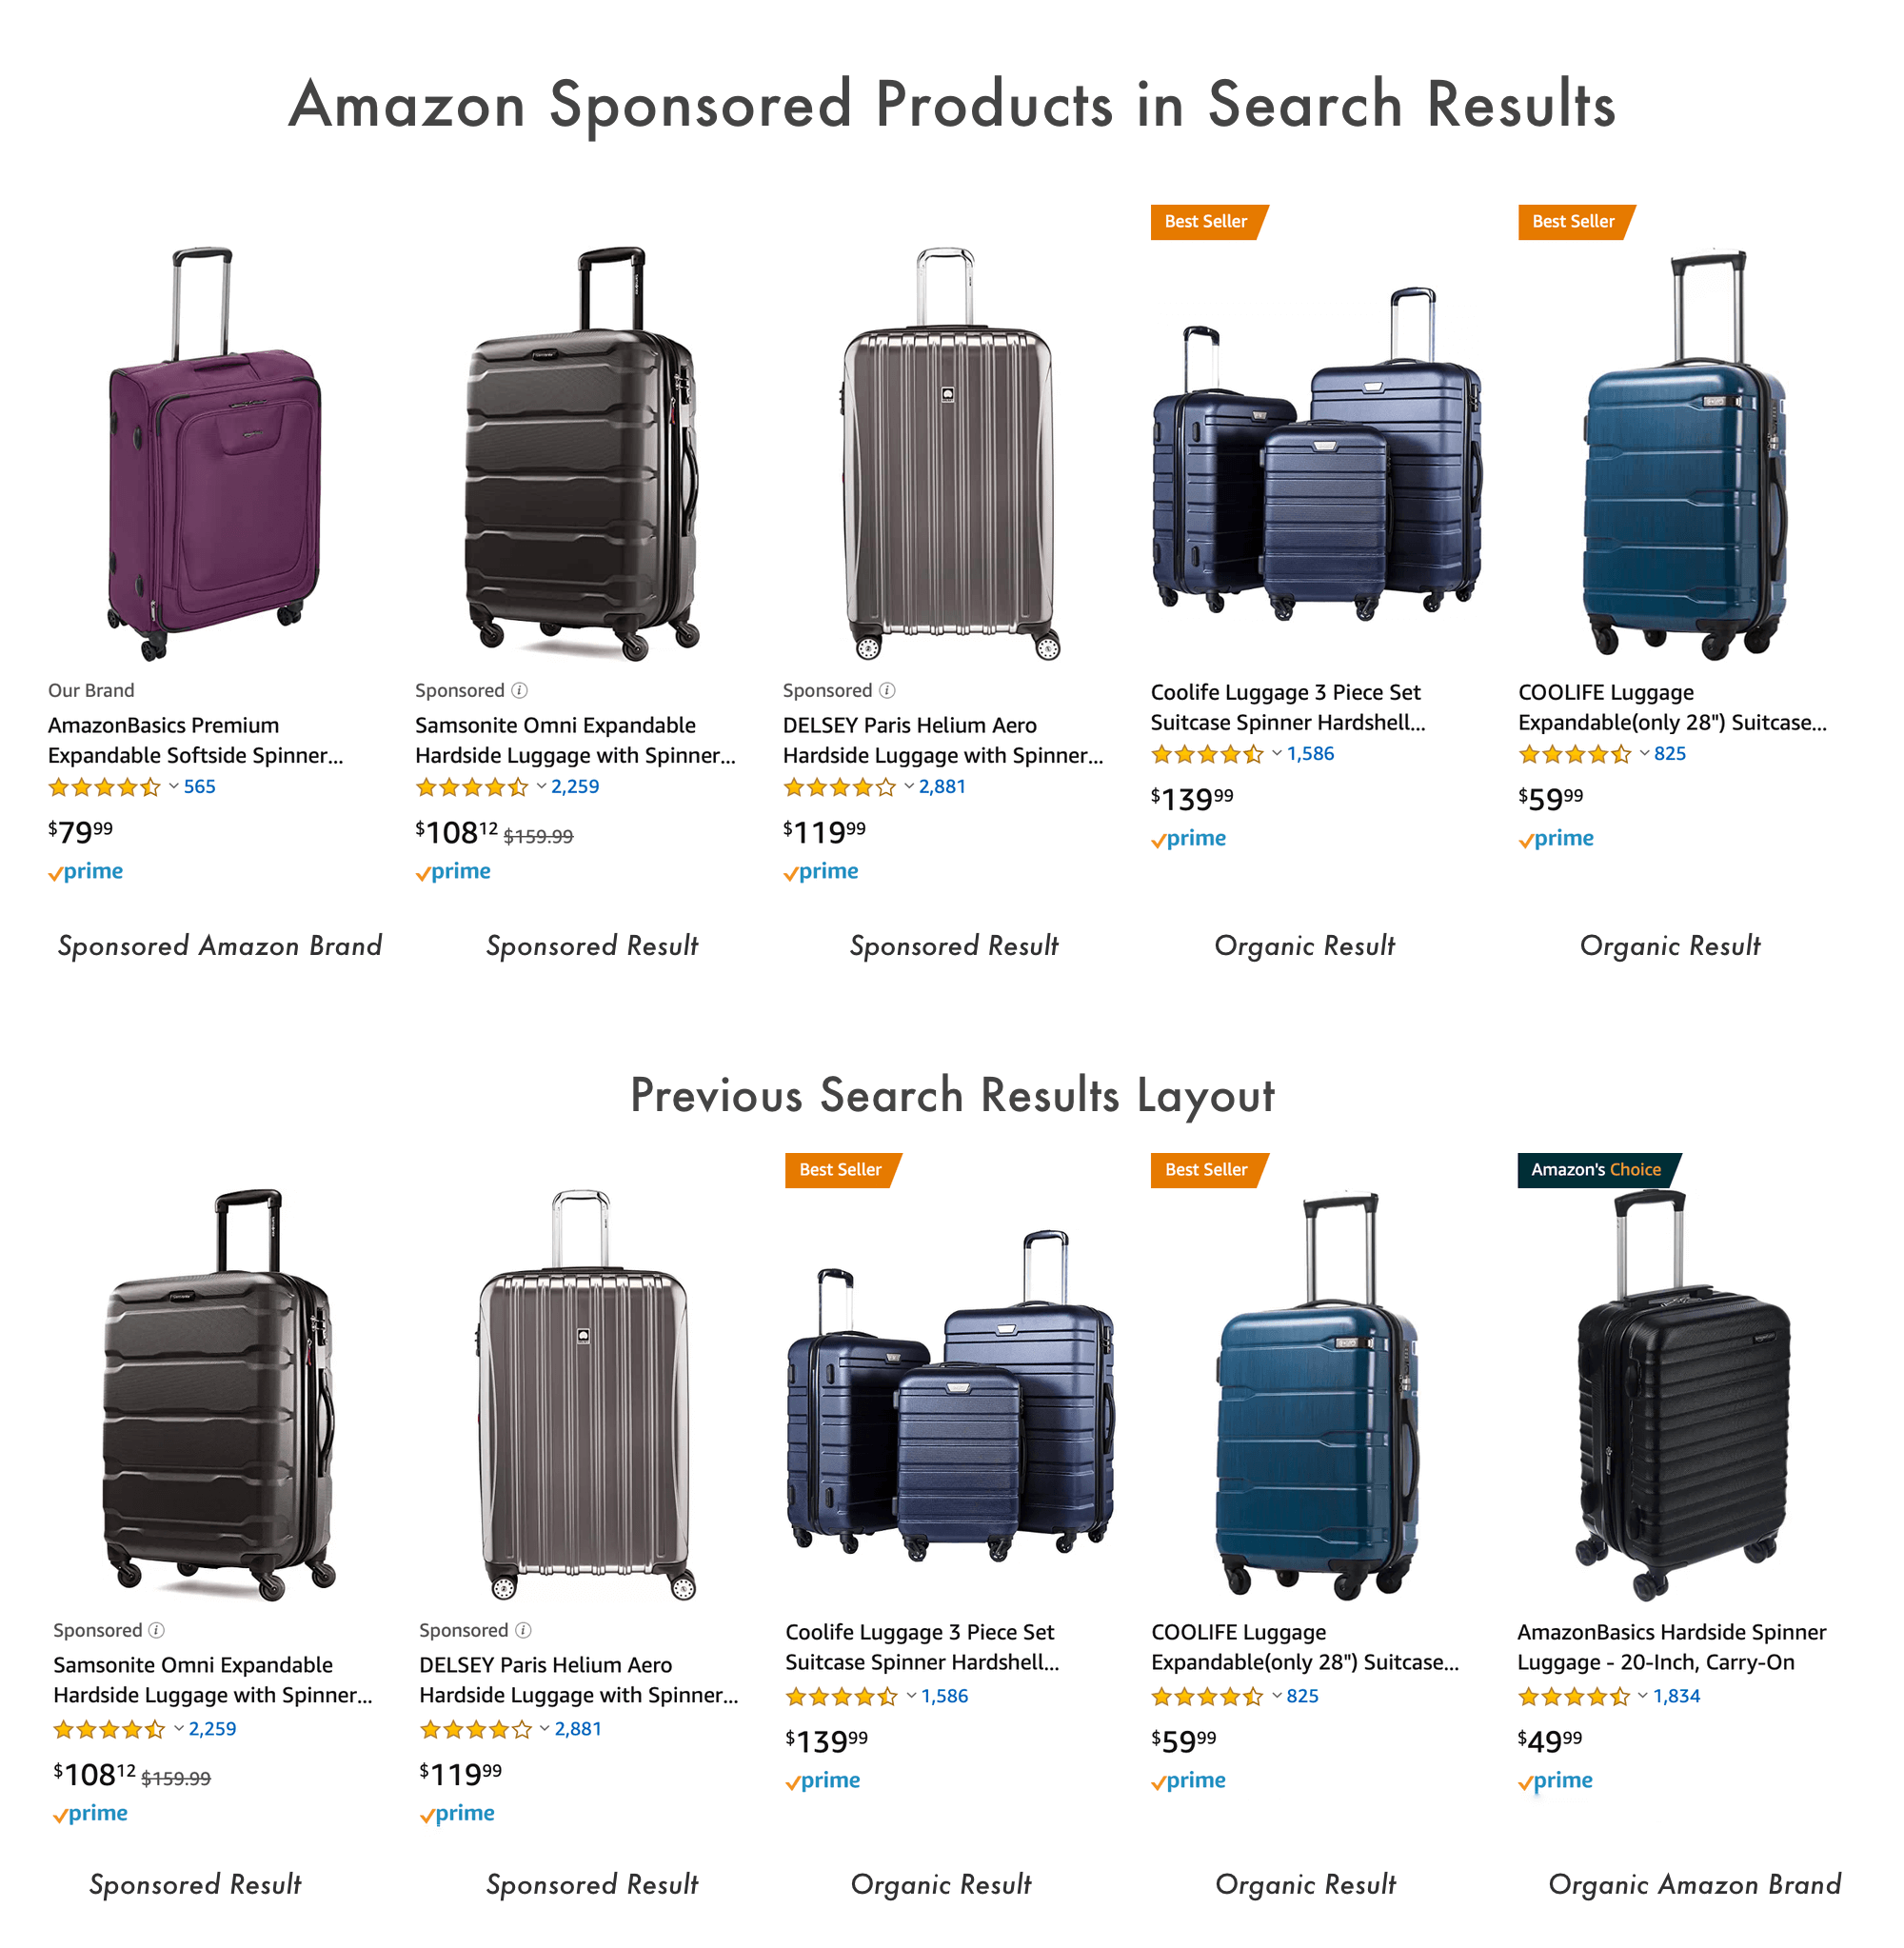 Amazon Sponsored Products in Search Results